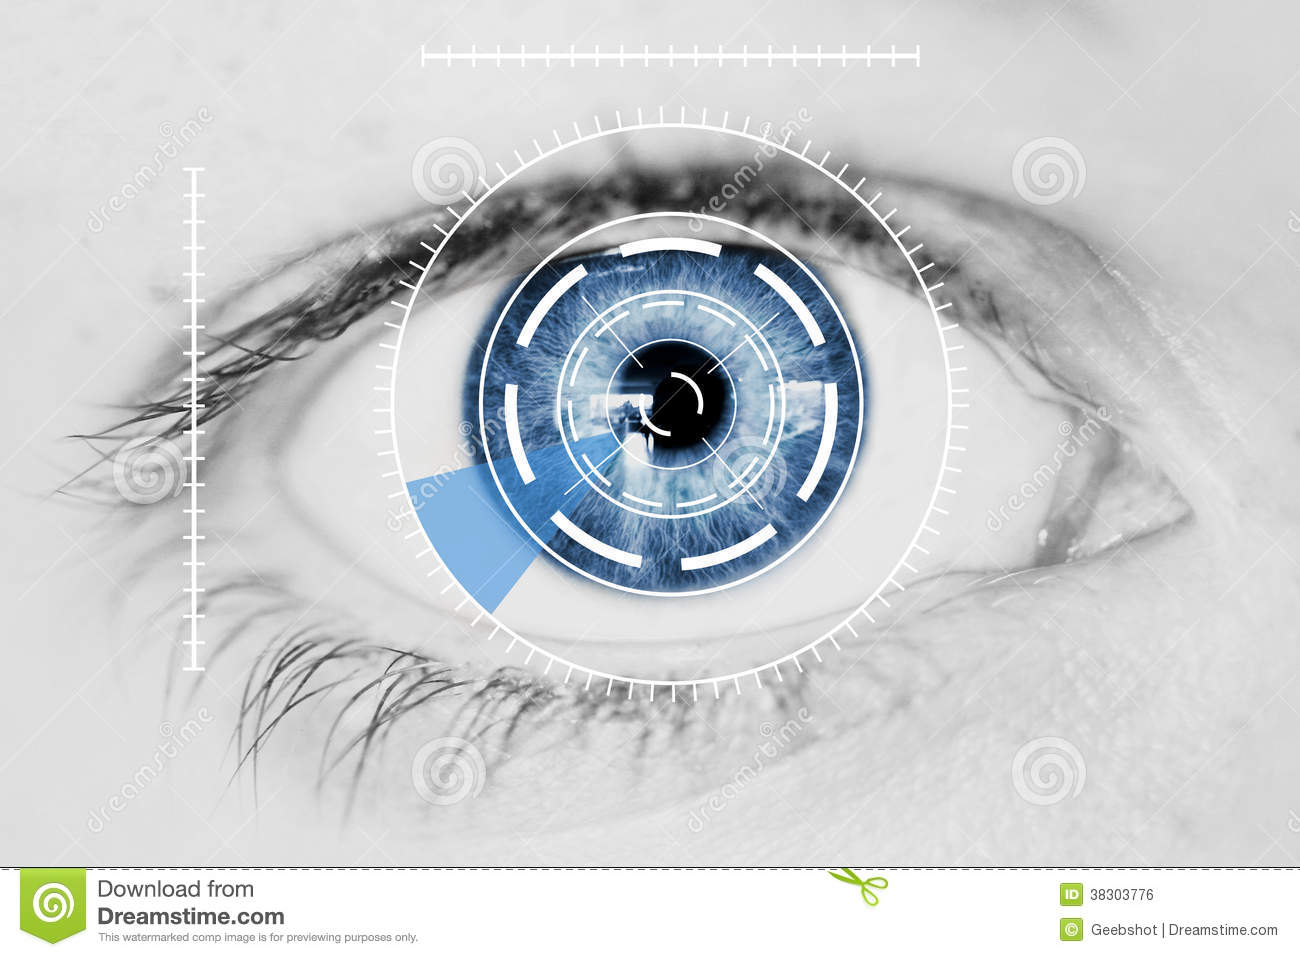 Security Iris Scanner On Blue Human Eye Royalty Free Stock Image.